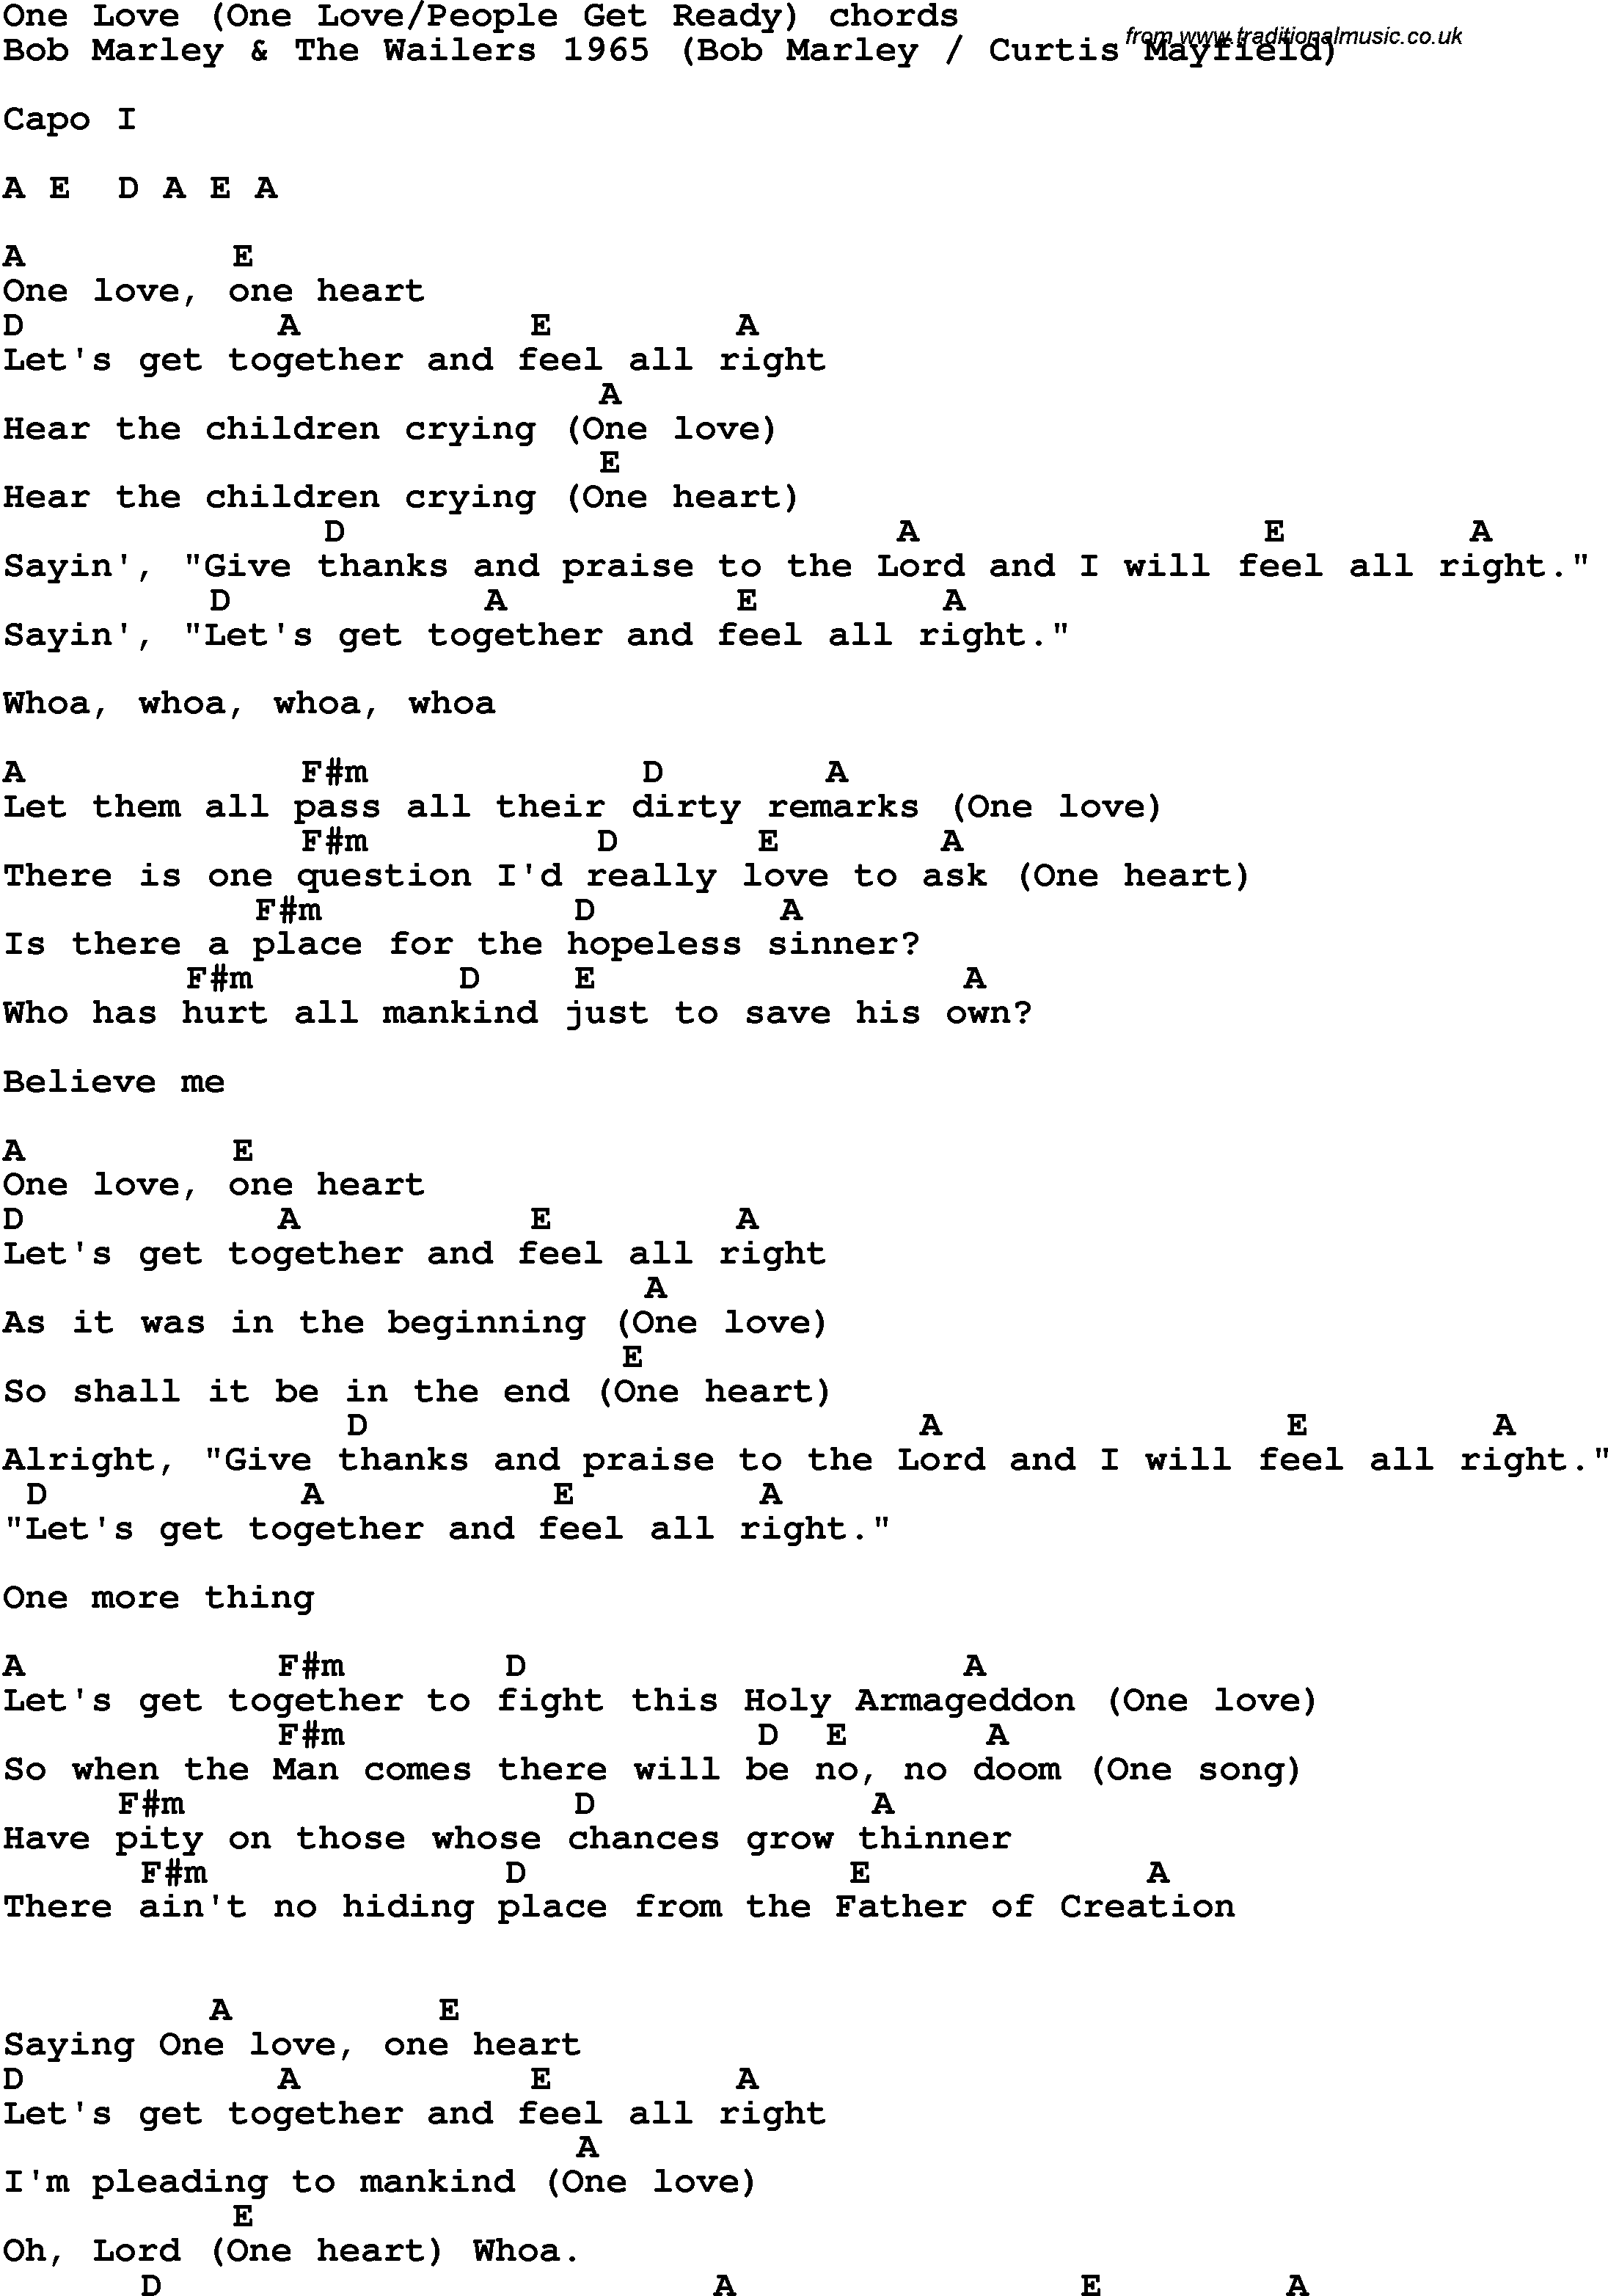 Song Lyrics With Guitar Chords For One Love